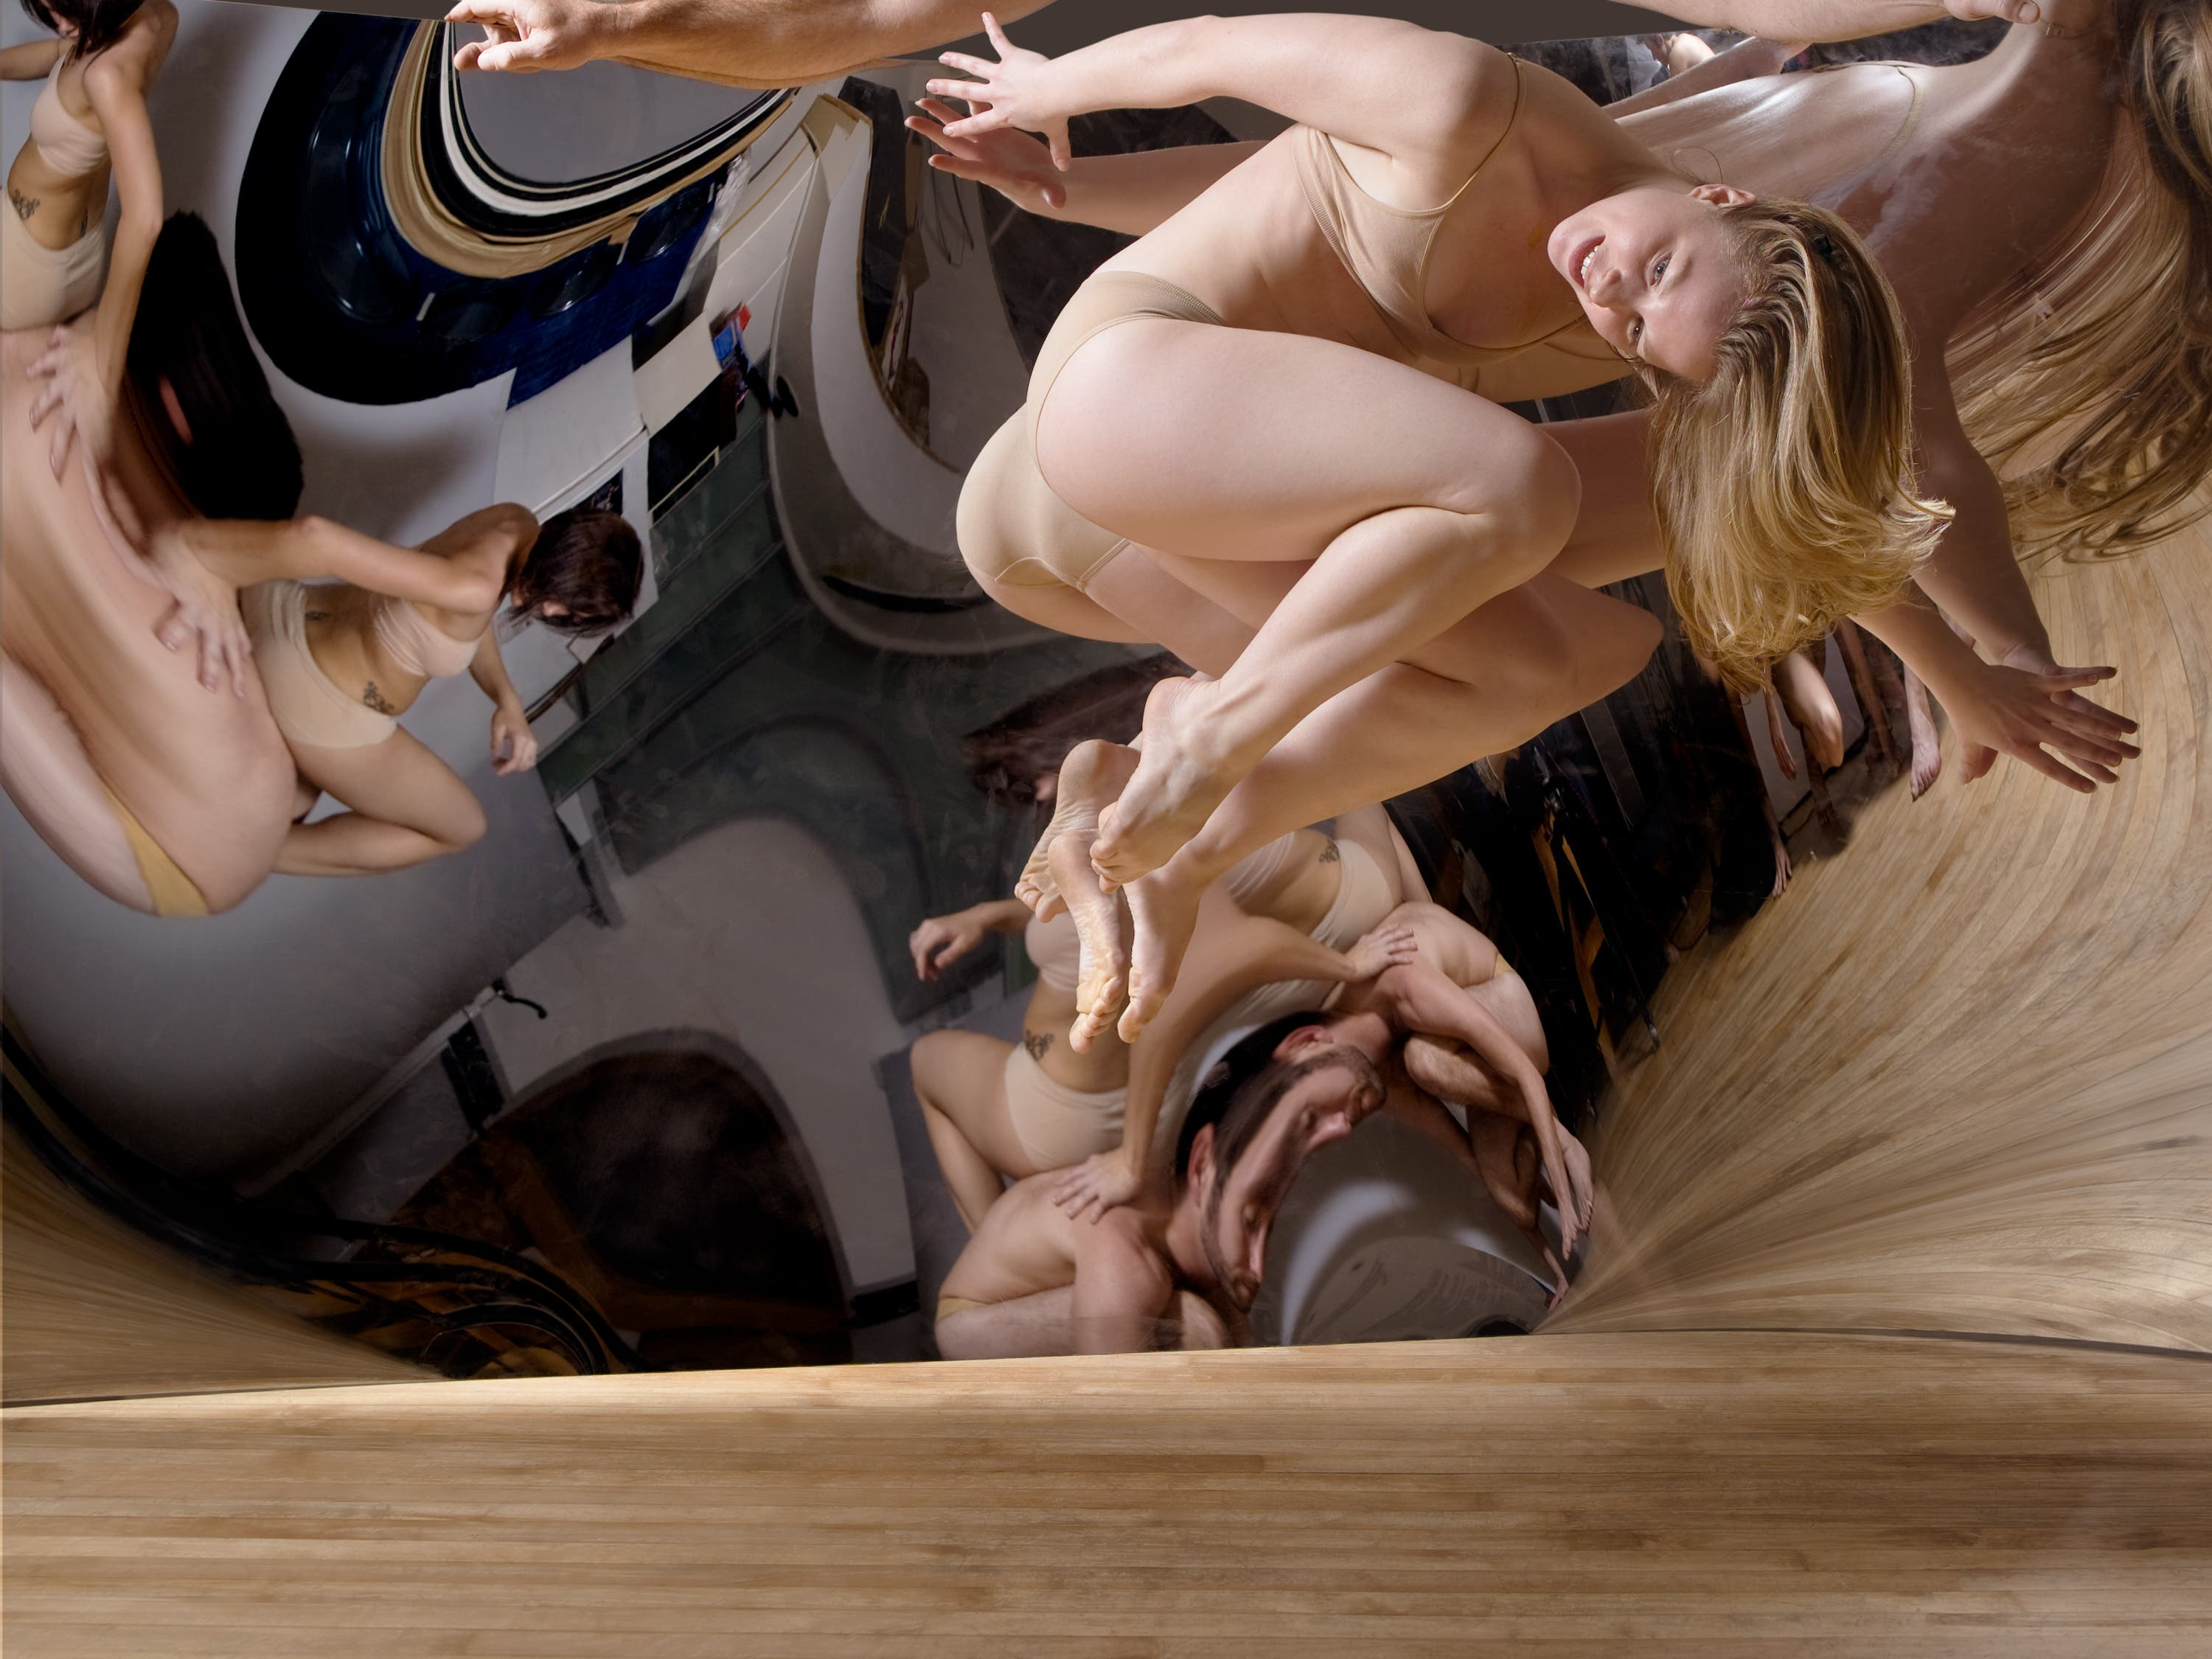 Tomorrow! Dance Photographer Lois Greenfield on Inside the Photographer's Mind LIVE!